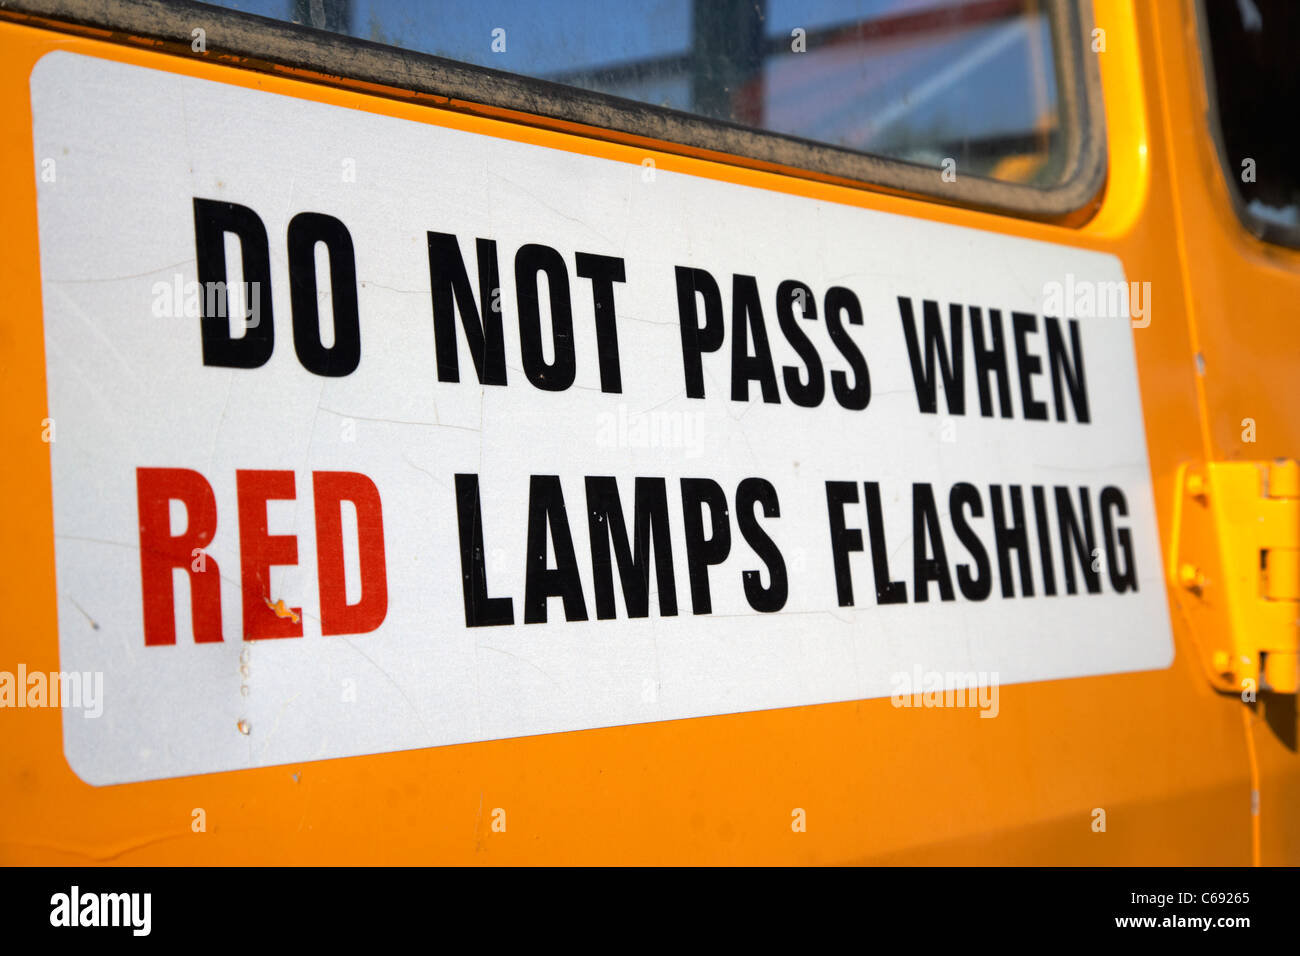 do not pass when red lamps flashing sign on the back of a yellow school bus Saskatoon Saskatchewan Canada - Stock Image